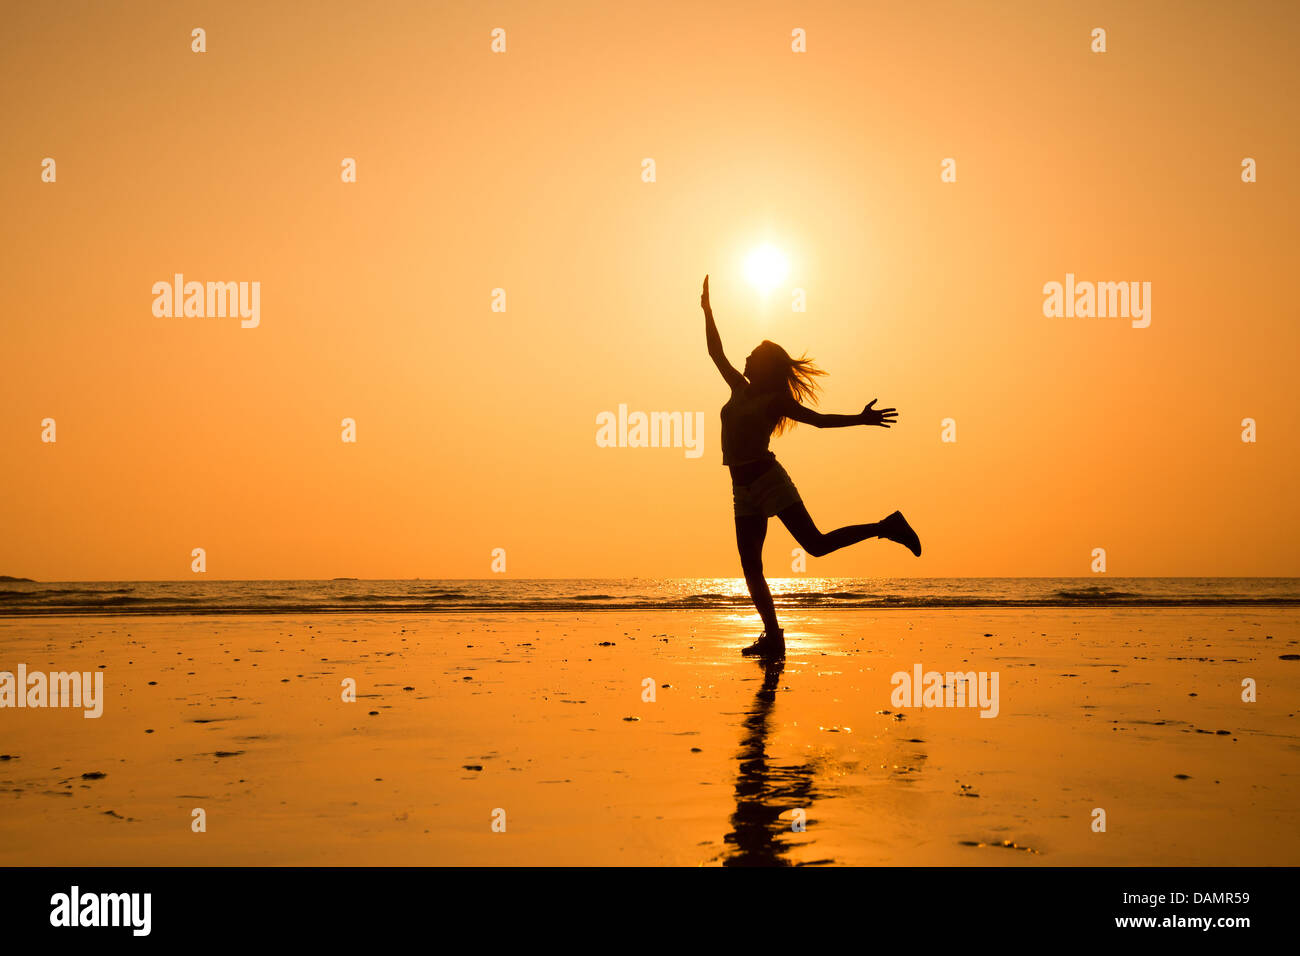 Abstract silhouette de jeune fille, l'espérance de vie en saut Photo Stock